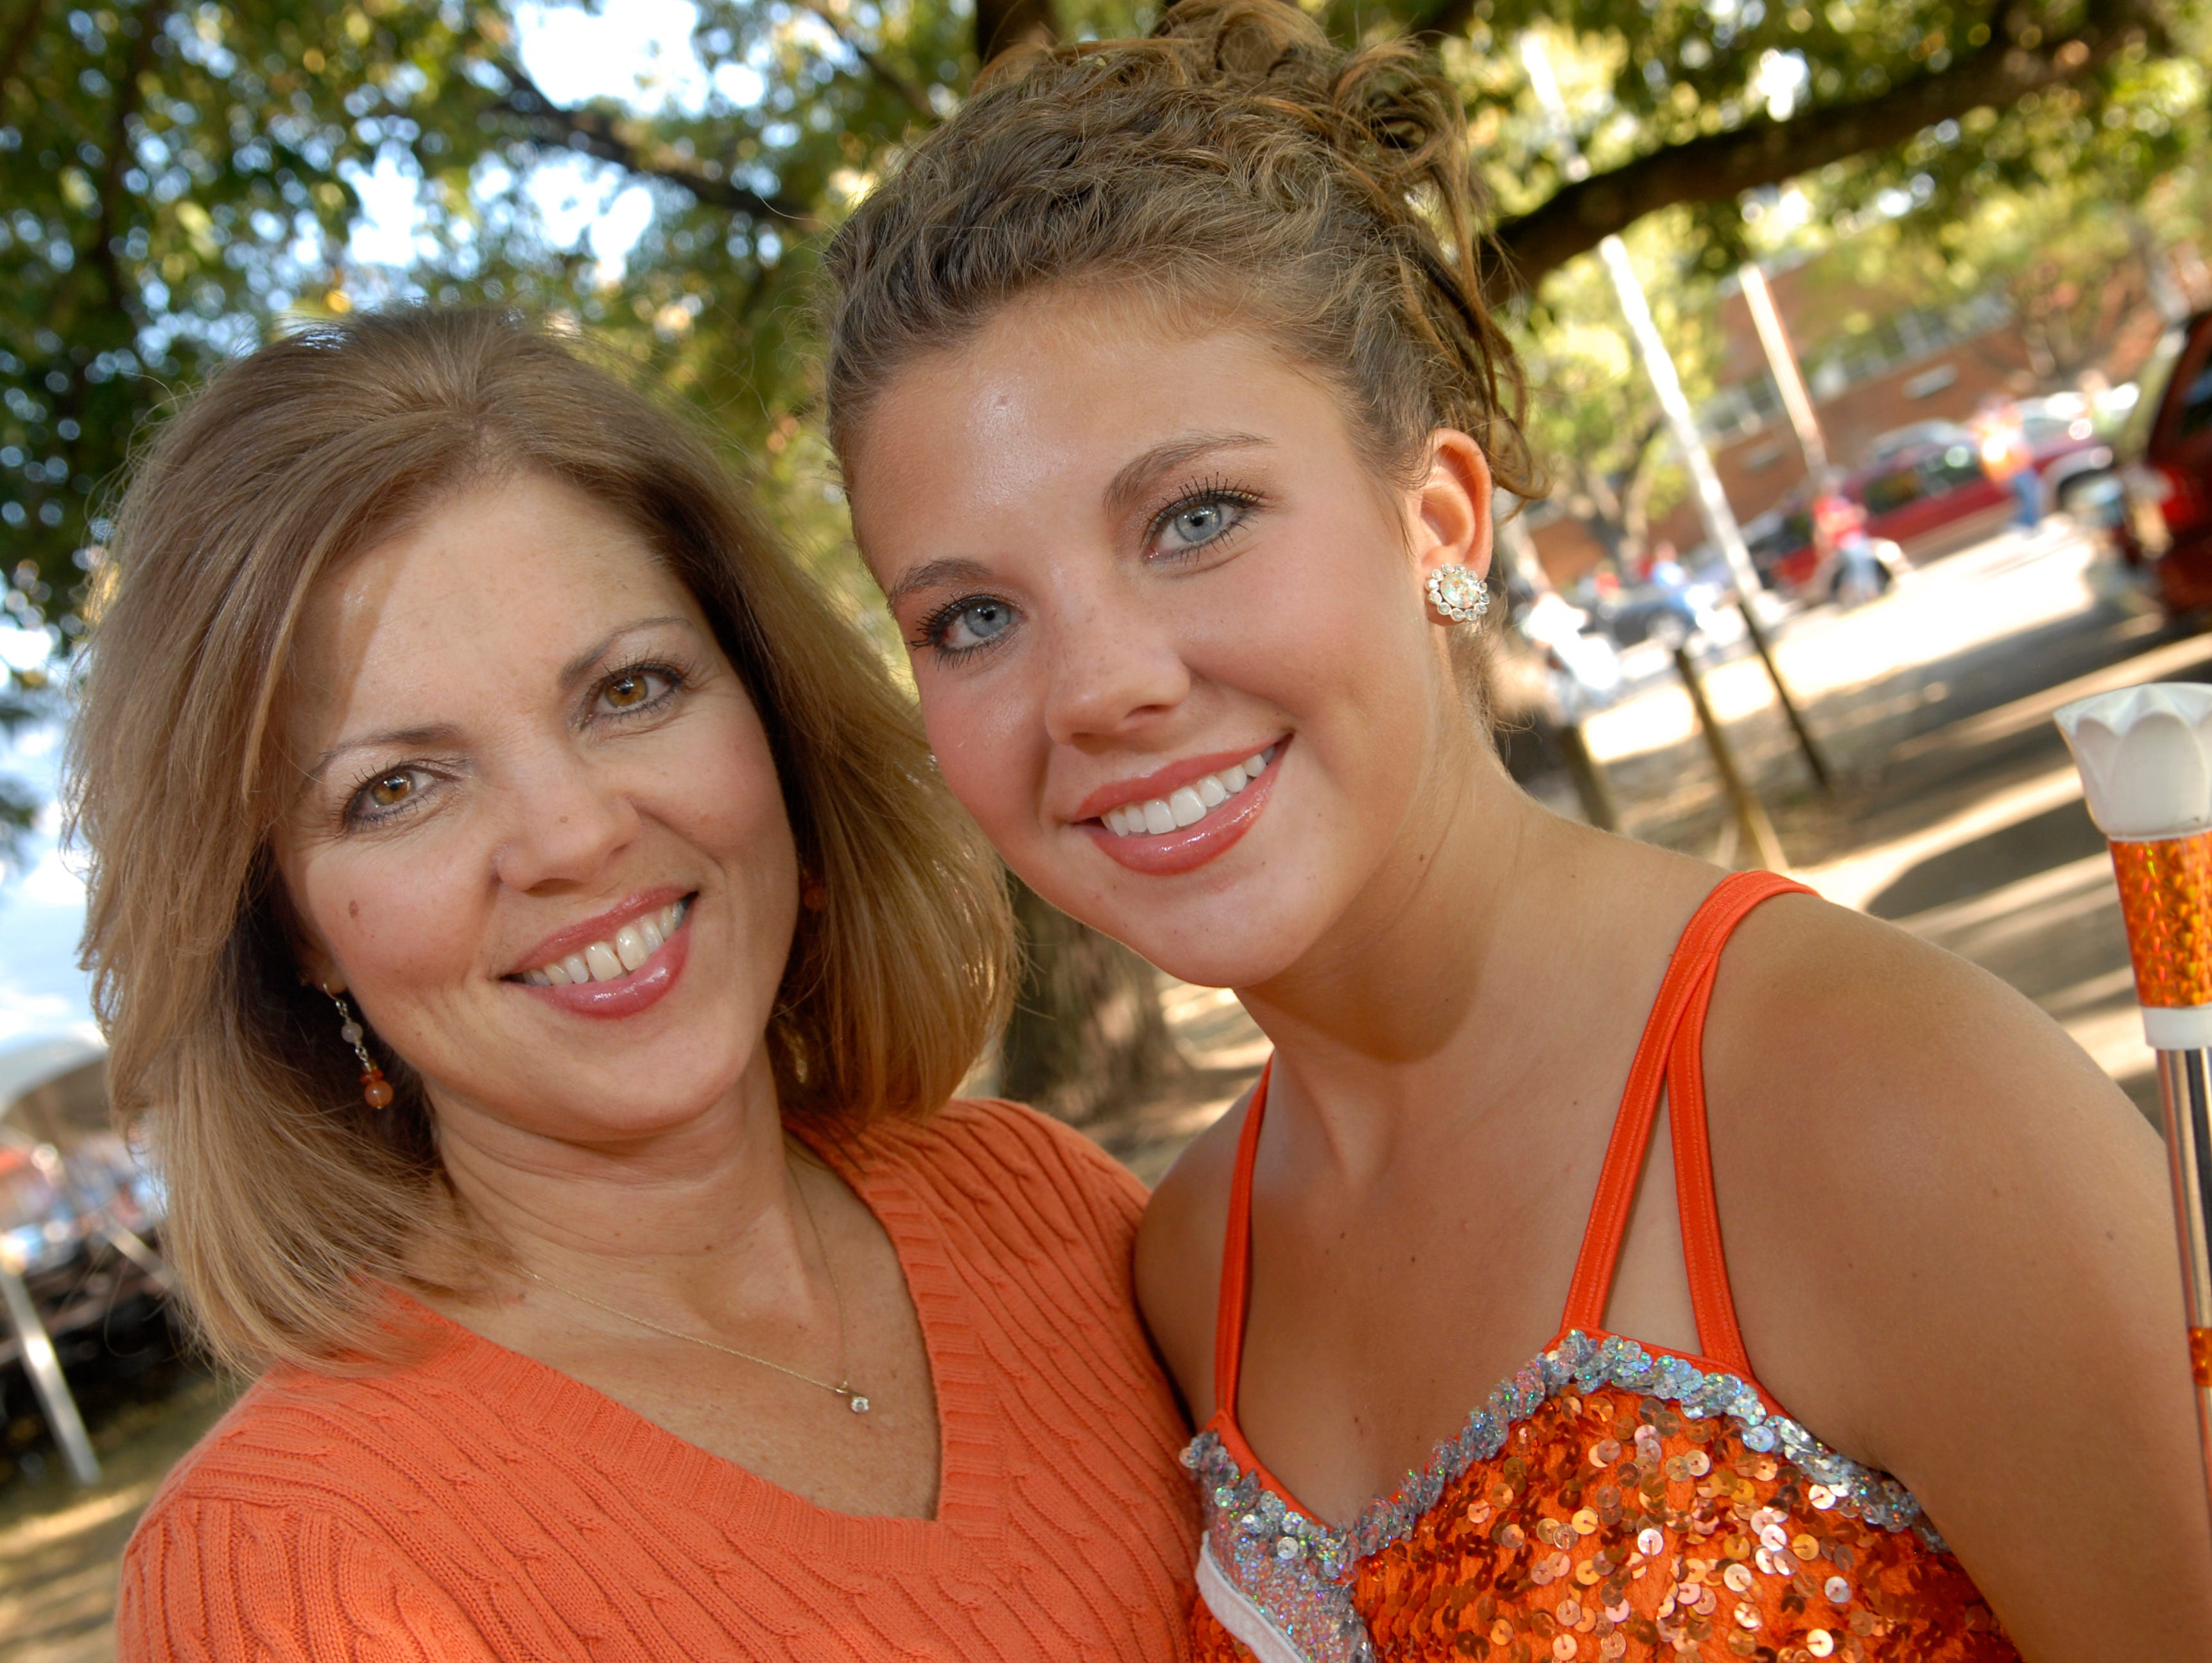 Leigh Ann Summers, a 1984 University of Tennessee graduate and former twirler, left, with her daughter Kristi Summers, a freshman at UT following Friday's UT Homecoming Parade. Both will be performing during Saturday's Homecoming game.